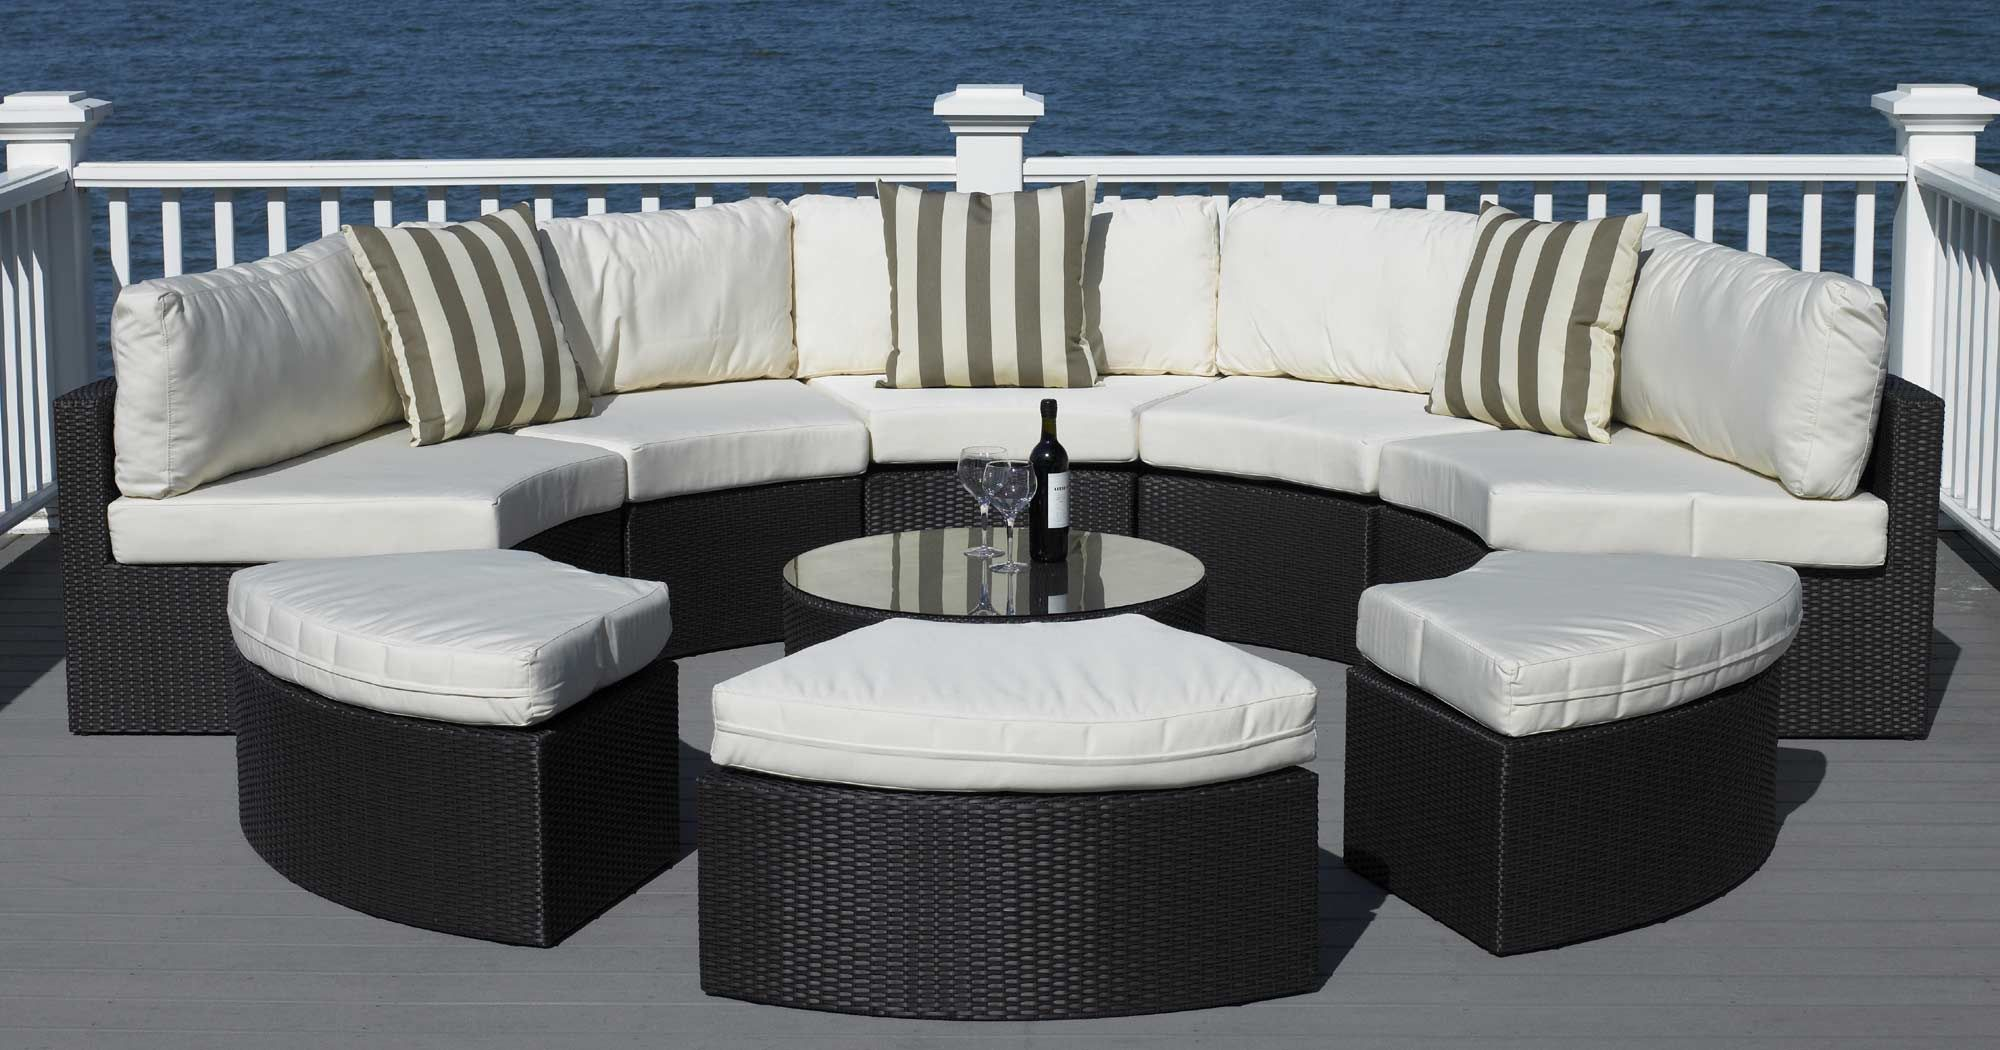 $2395 The Santorini Is A Round Sectional Thatu0027s Built To Entertain. It  Includes A Five Piece Round Outdoor Sectional, Three Ottomans, And Coffee  Table With ...